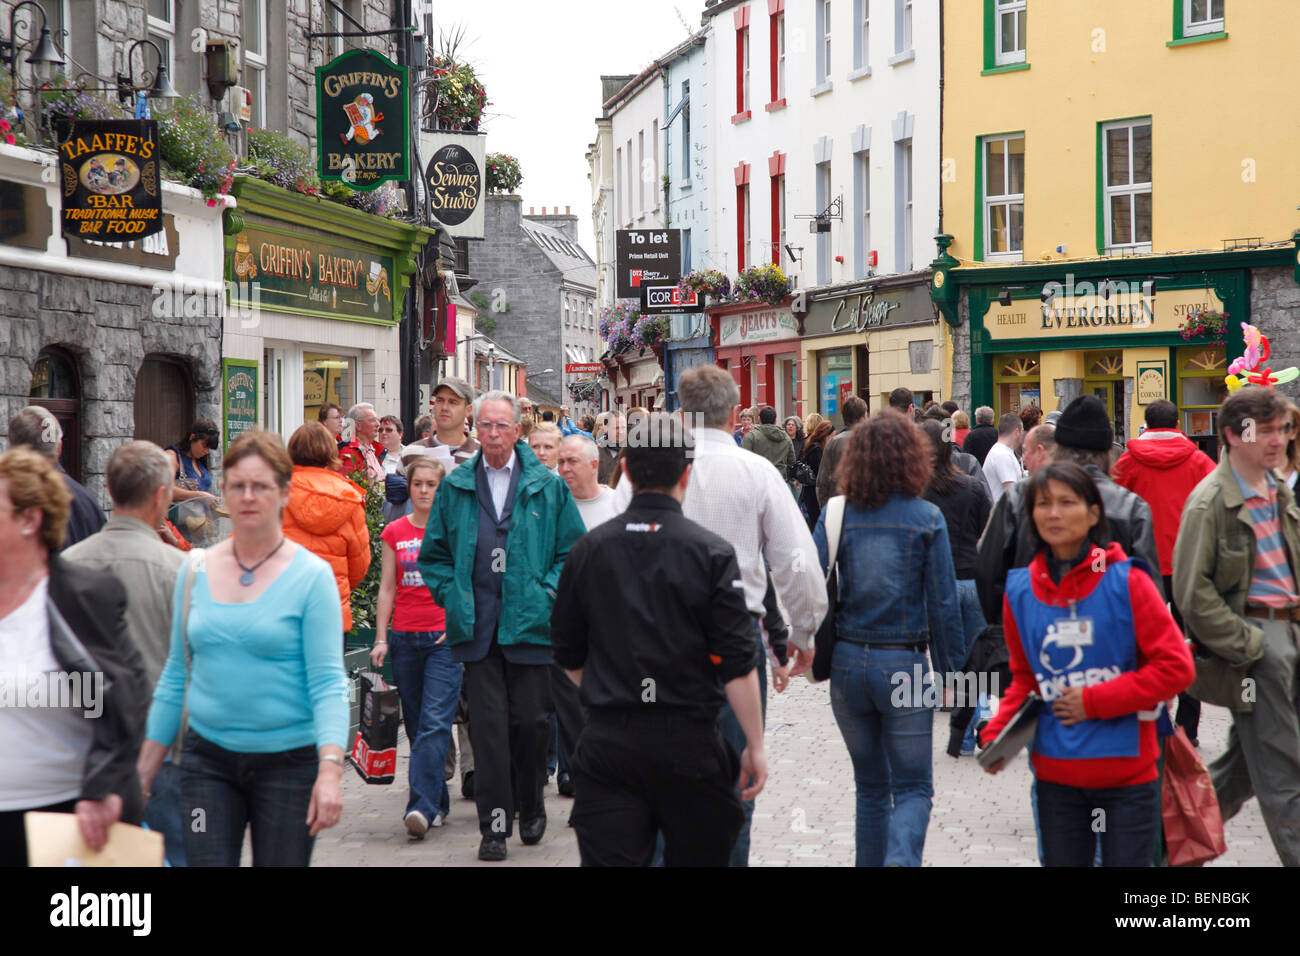 many people on shopping mile in the city centre (High Street - Latin Quarter) of Galway, Ireland - Stock Image